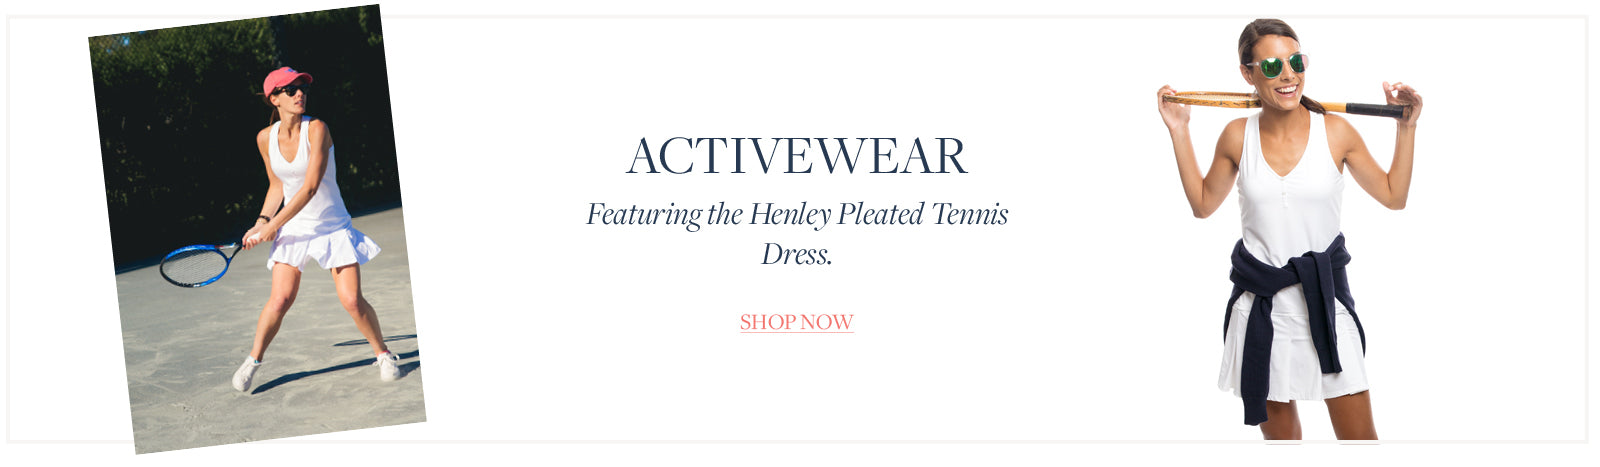 Featuring the Henley Pleated Tennis Dress.